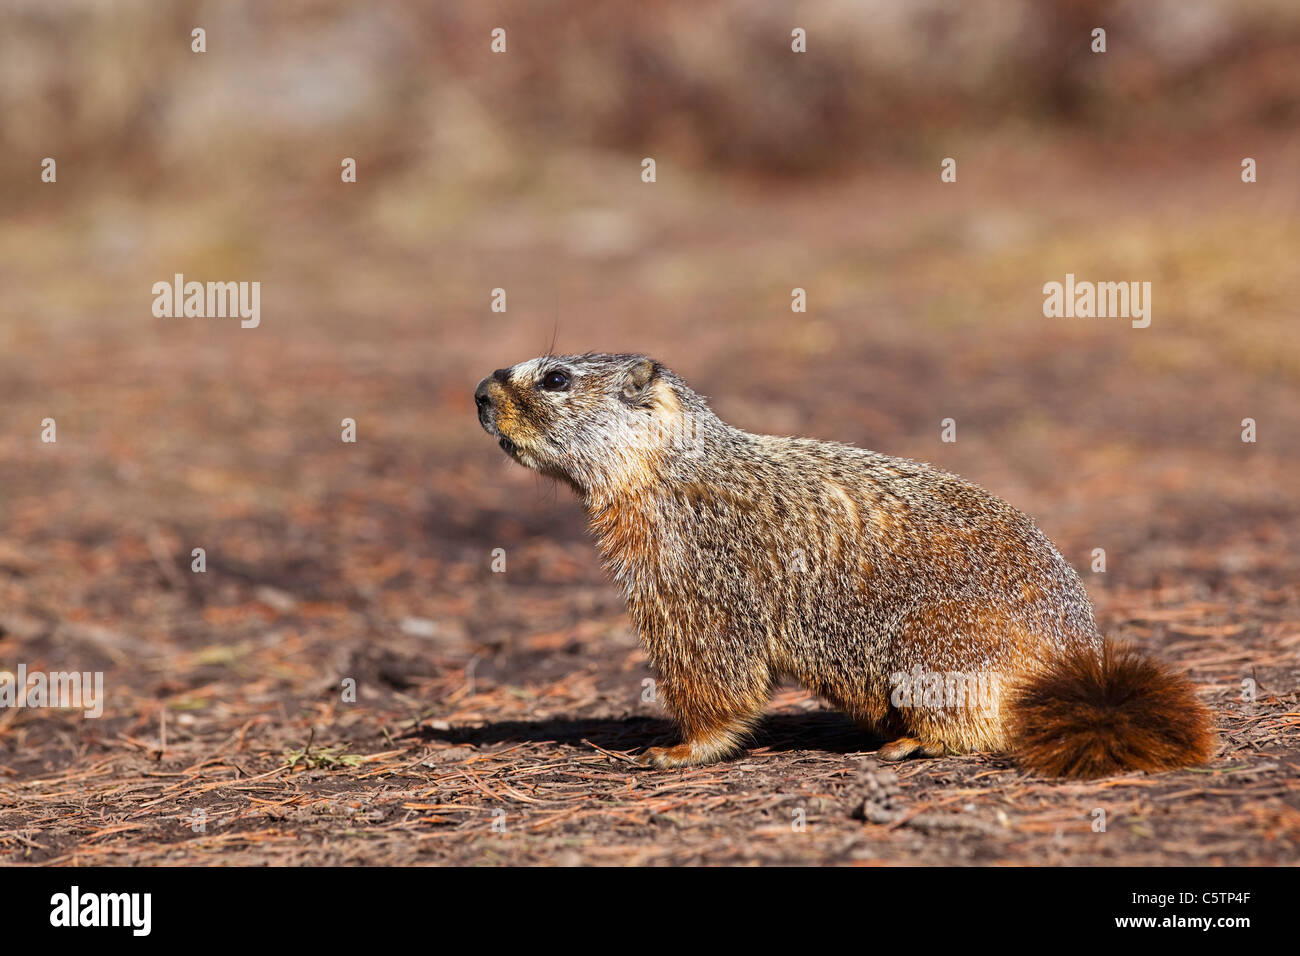 USA, Yellowstone Park, Groundhog (Marmota monax), close-up - Stock Image